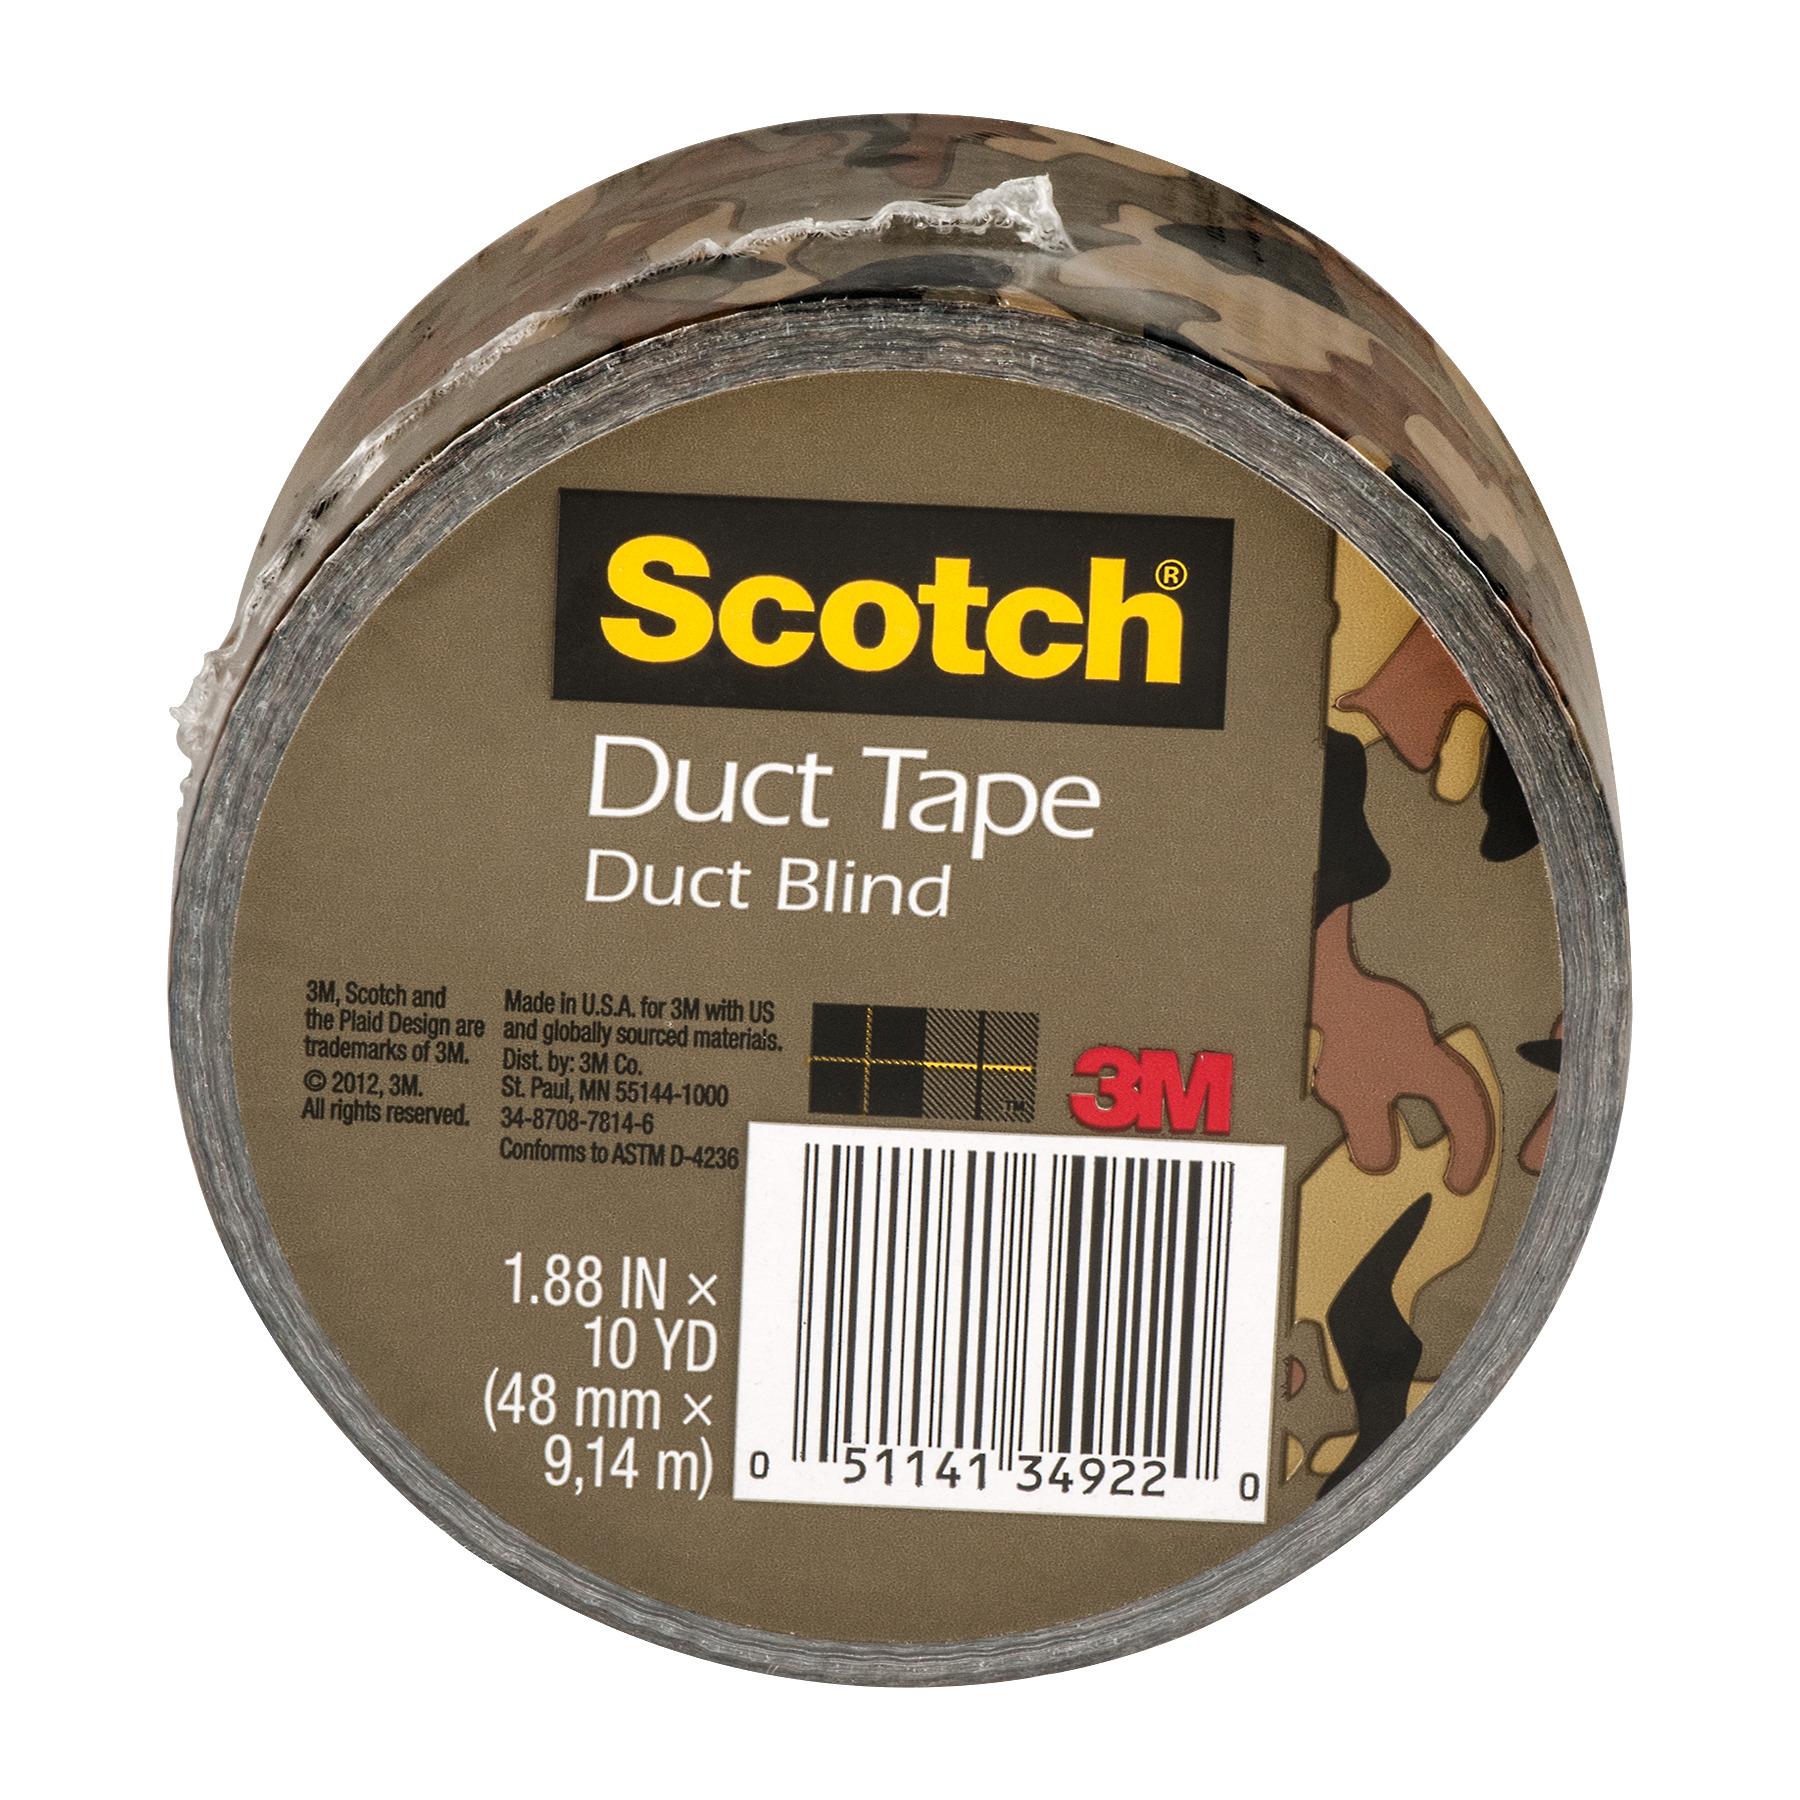 Scotch Duct Tape Duct Blind, 10.0 YARDS